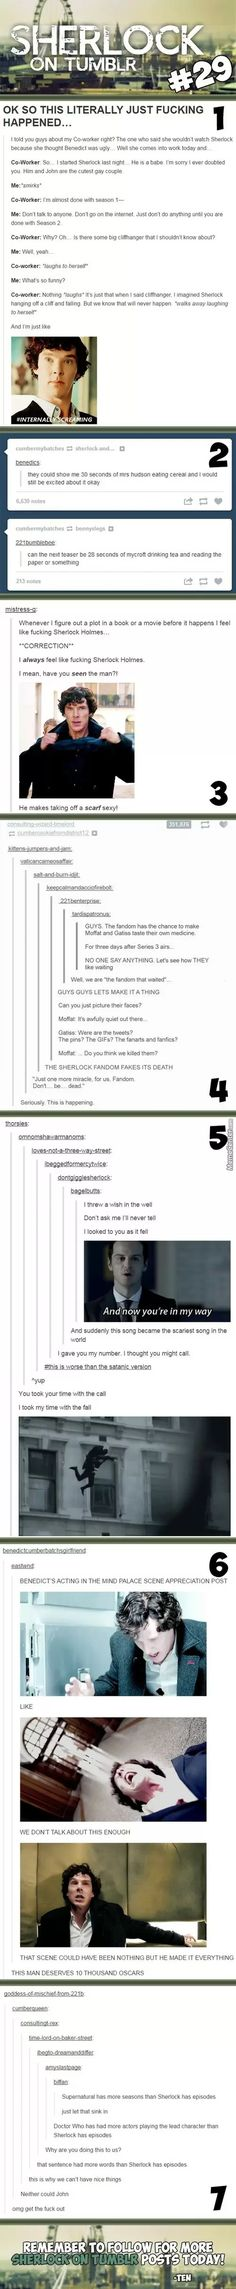 Sherlock On Tumblr #29